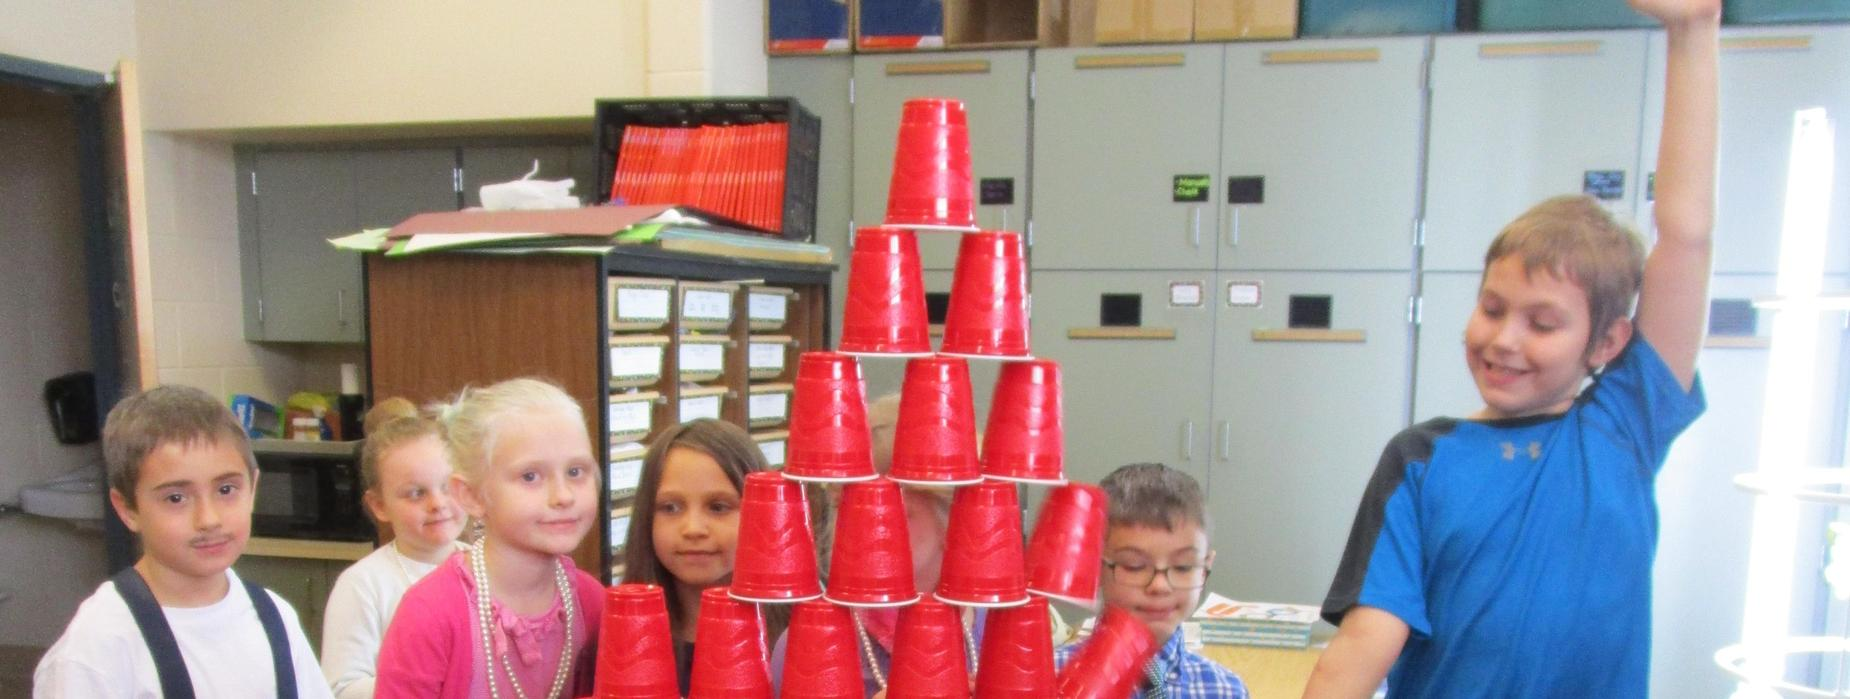 Several elementary students with a pyramid they build out of red solo cups thirteen rows high as part of the 100th day of school celebration.